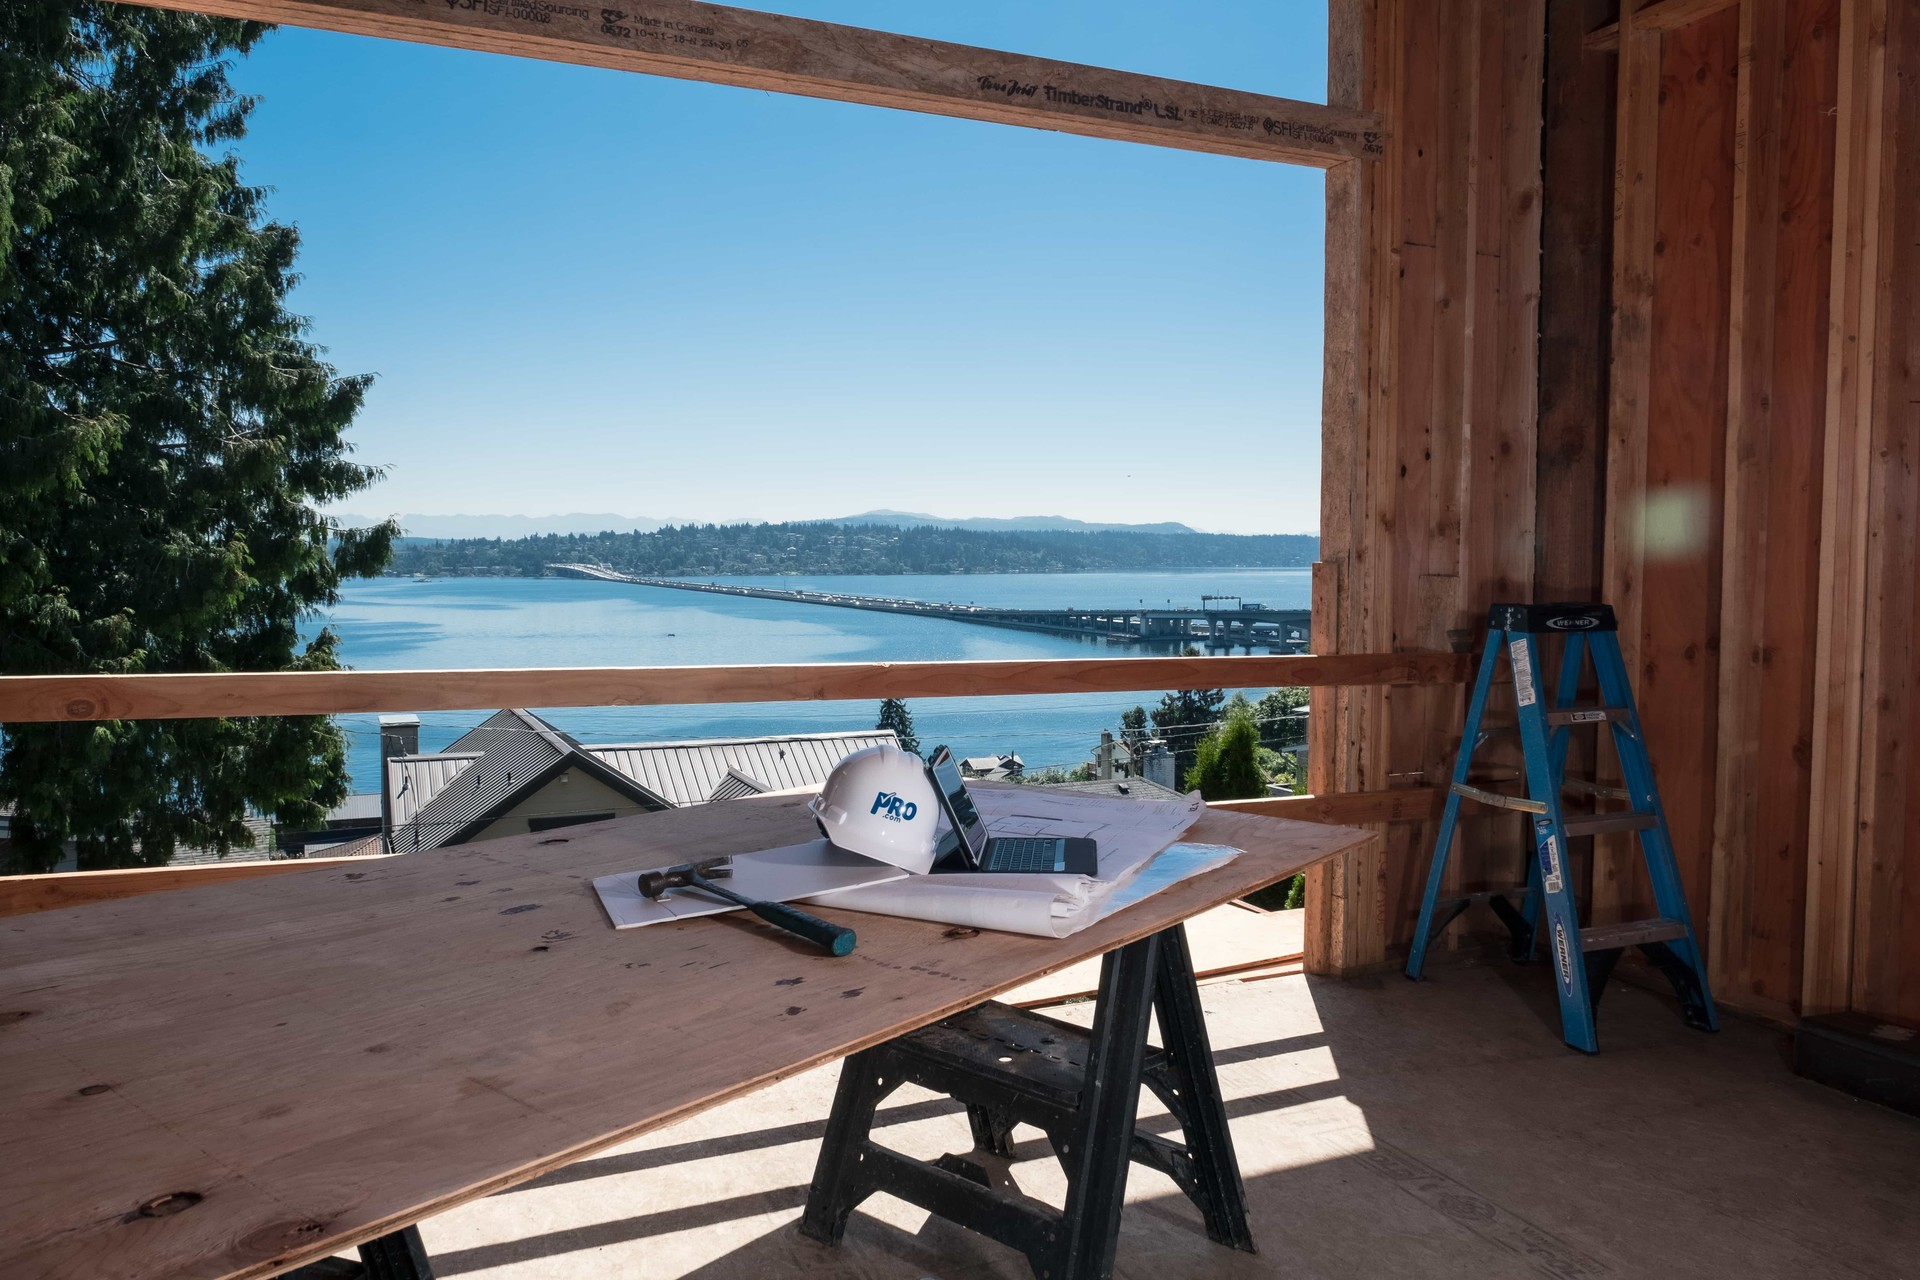 Pro.com view of Lake Washington from home under construction